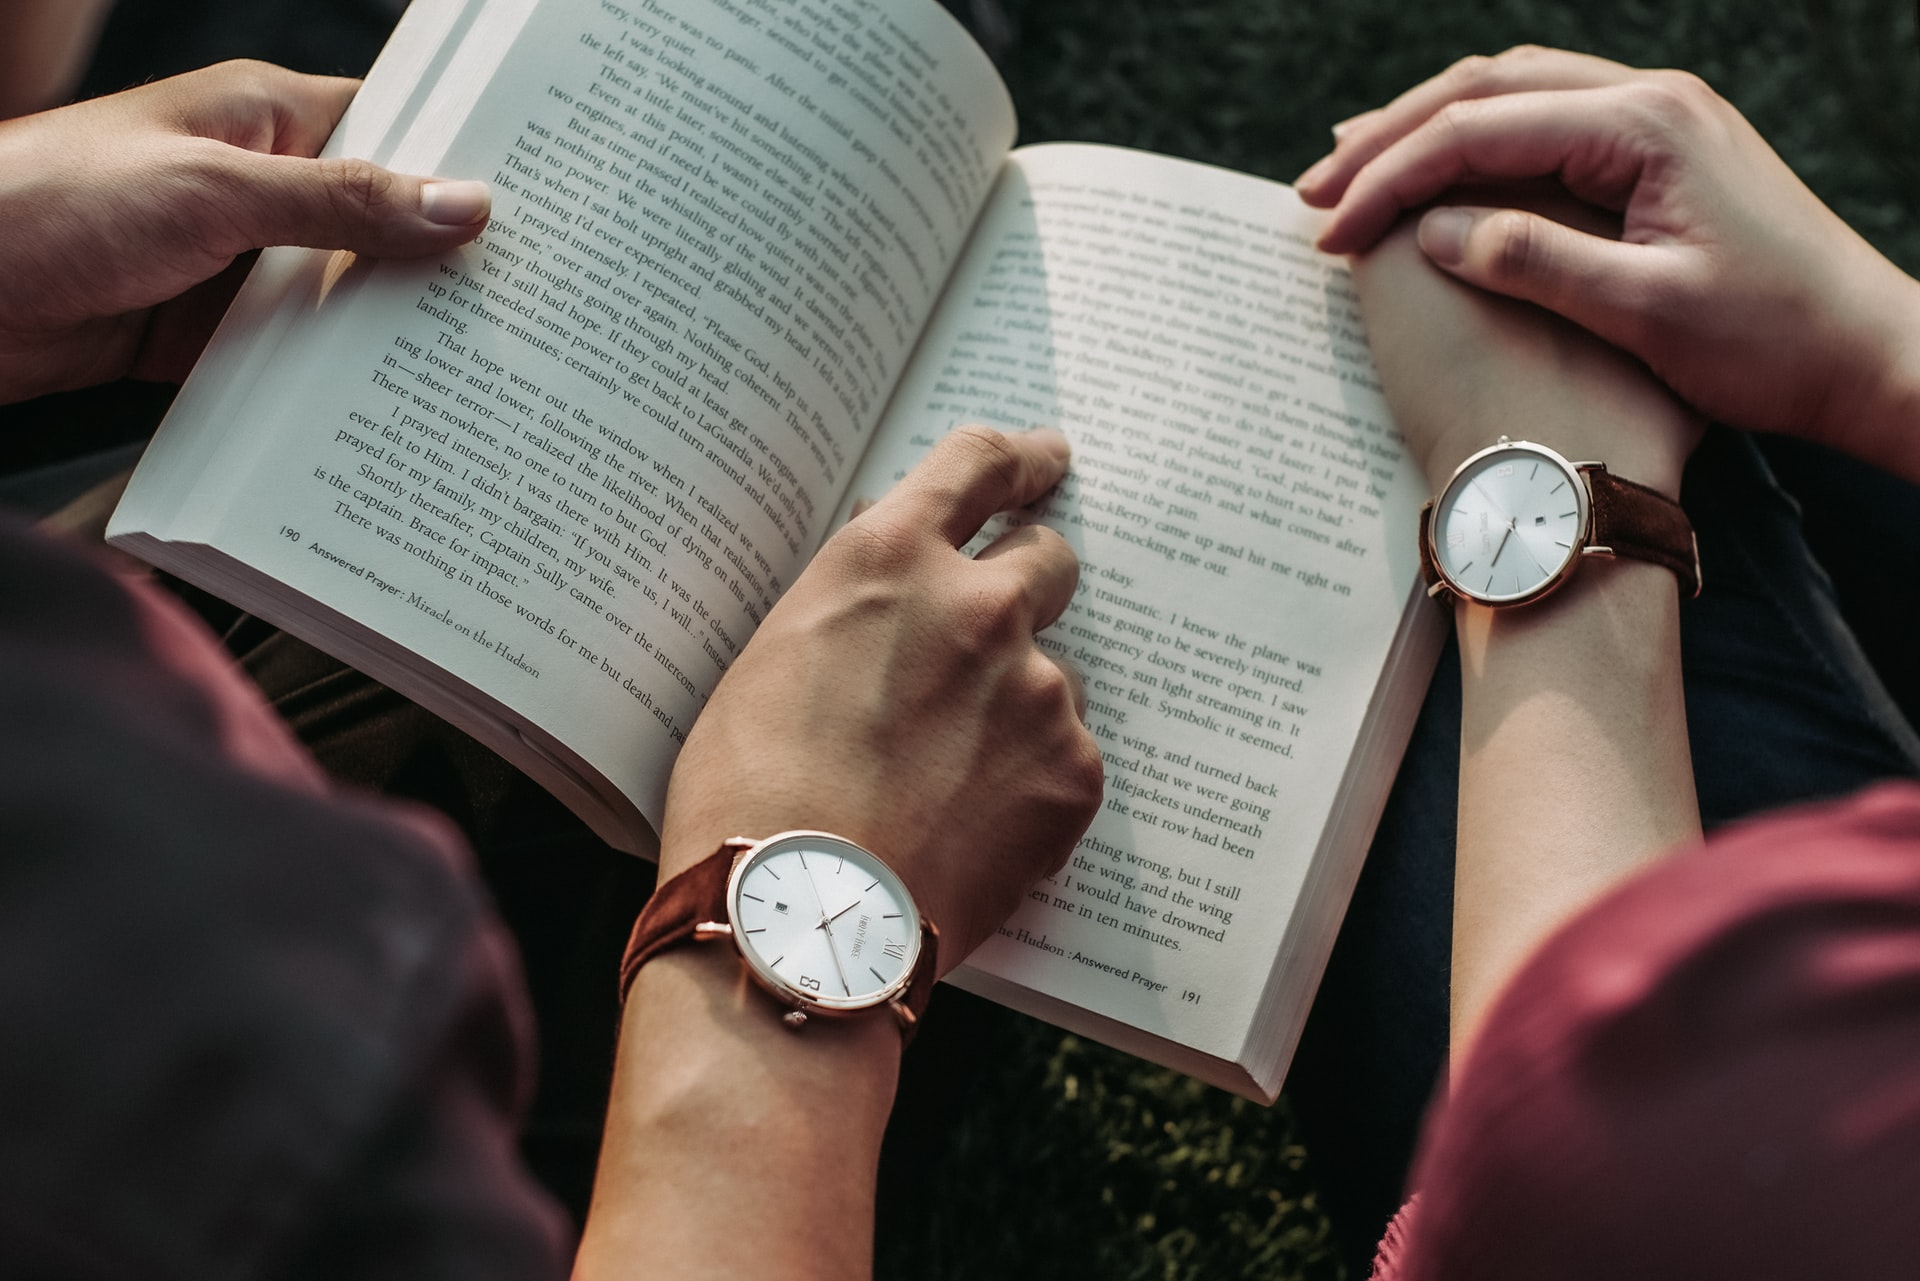 Prism Realty - Austin Authors to Check Out While Stuck Indoors - Best Austin Real Estate Broker - Austin Homes